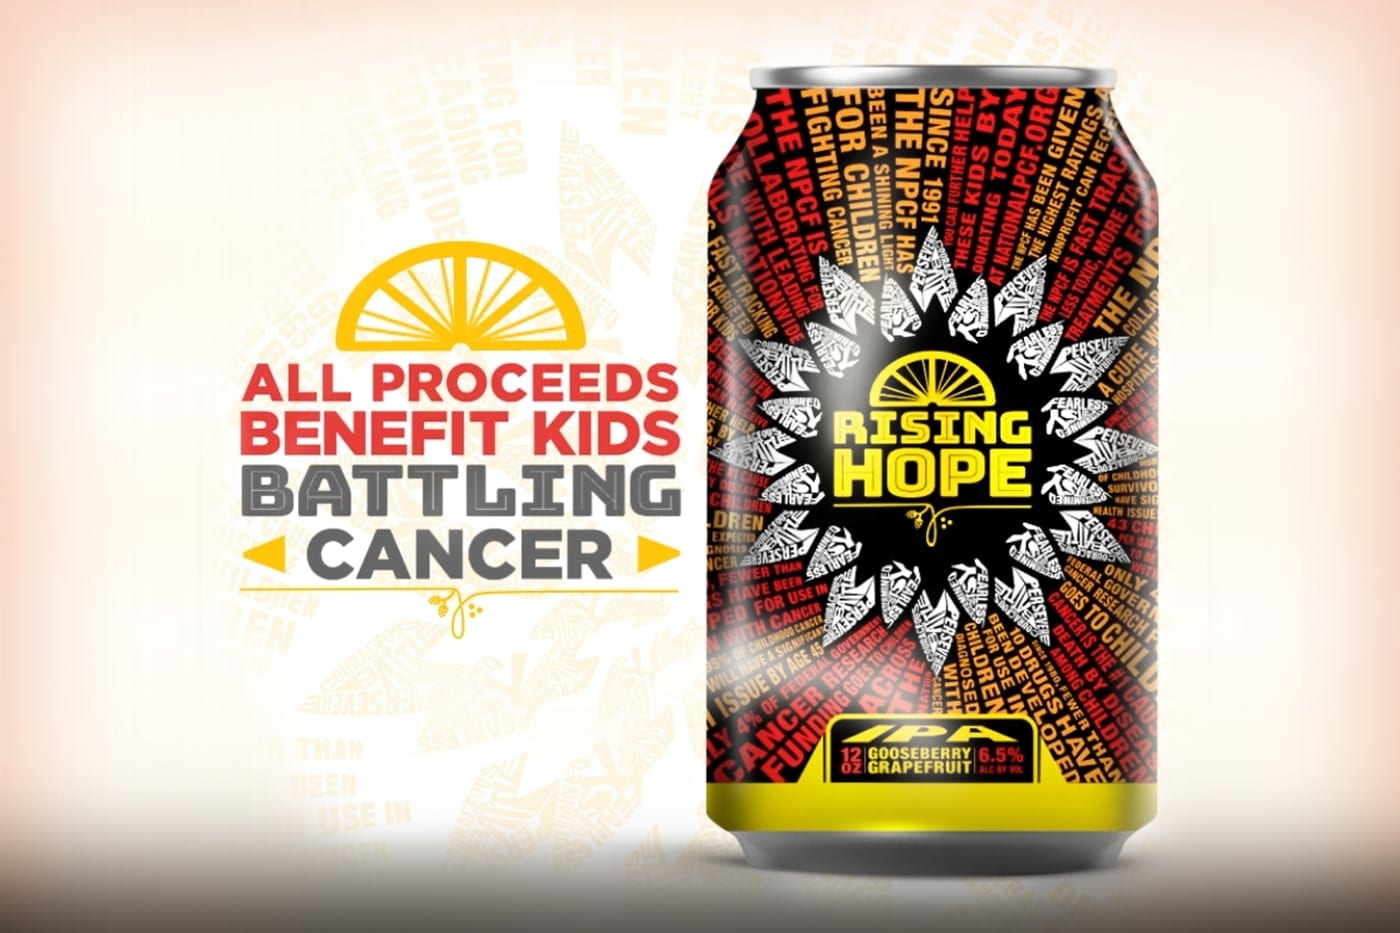 Image of the Rising Hope can with text to the left saying All Proceeds Benefit Kids Battling Cancer